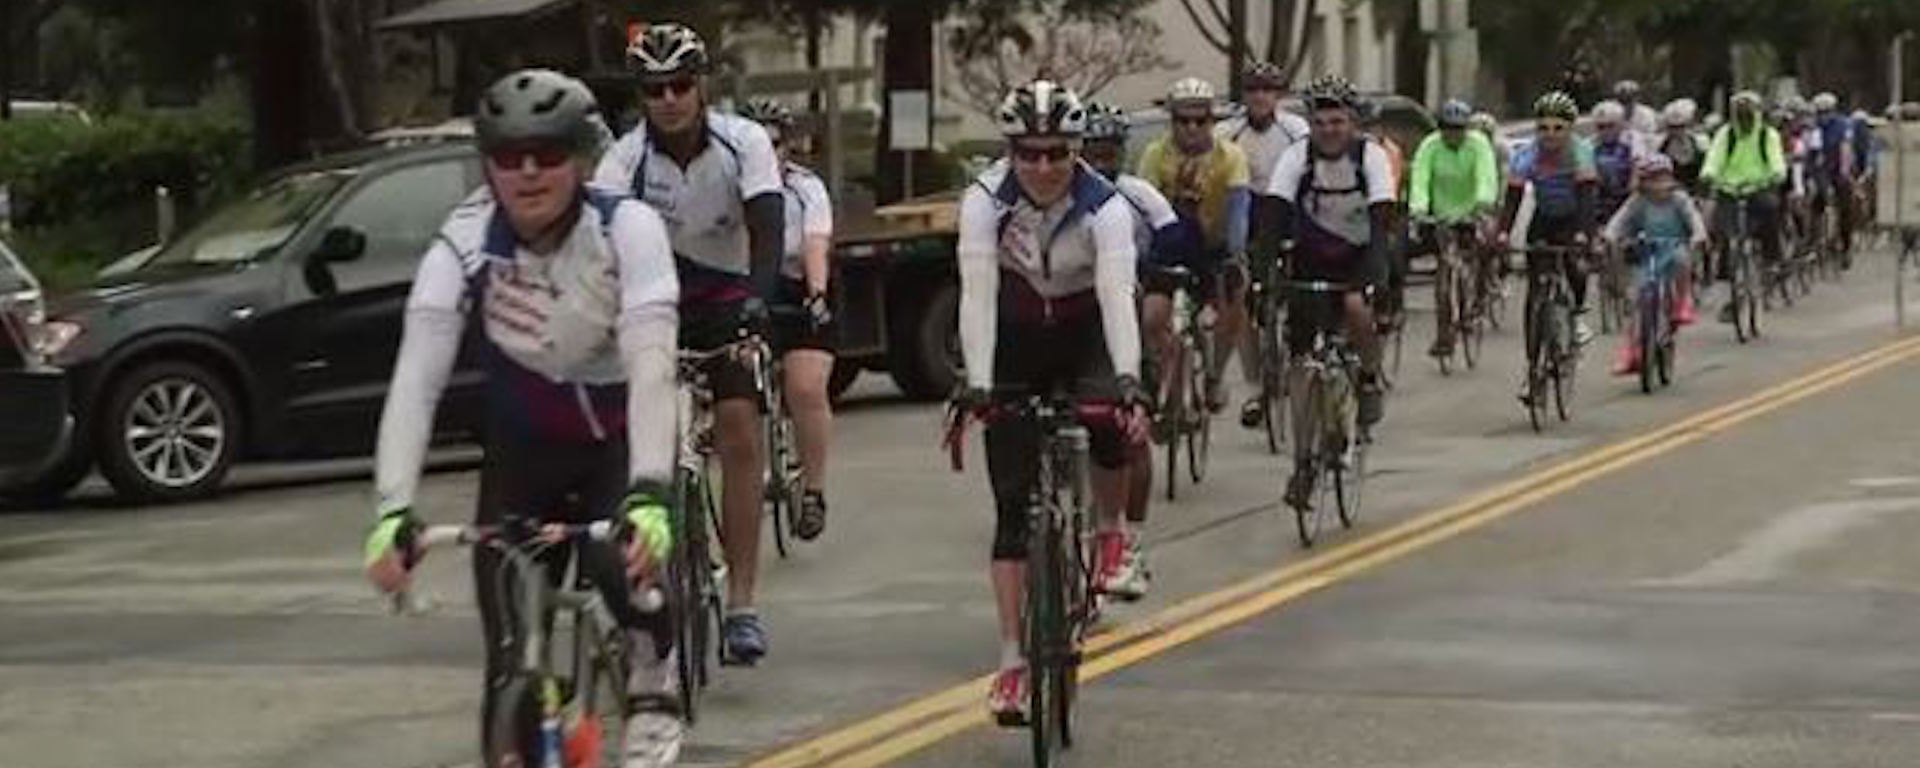 Sean Maloney, stroke survivor and founder of Heart Across America, has pledged to ride his bike across the nation in an effort to to raise money for arterial ultrasounds and awareness for health screenings and prevention of strokes.